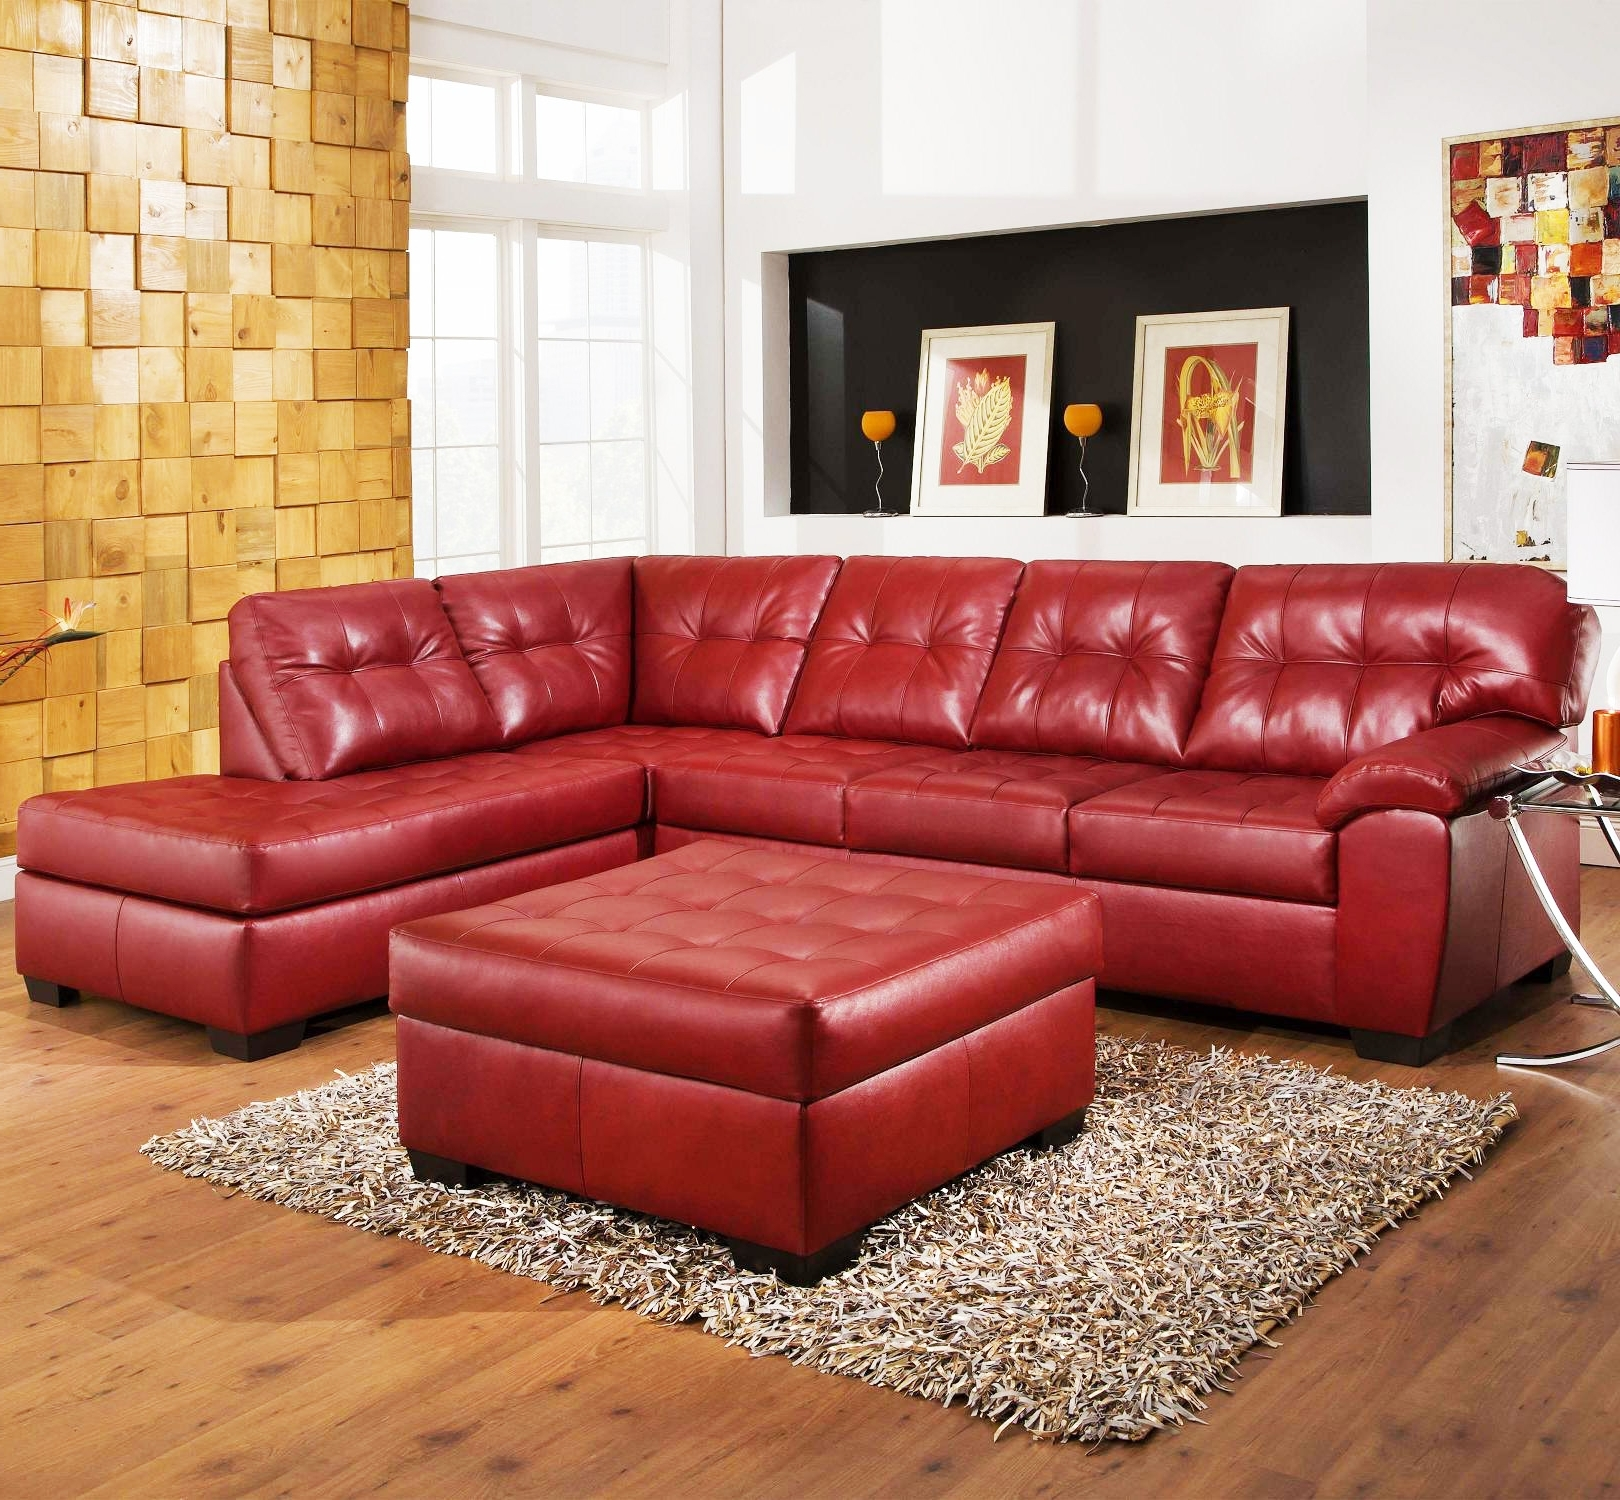 Recent Rooms To Go Sectional Sofas In Living Room: Astonishing Rooms To Go Sectional Leather Havertys (View 9 of 15)